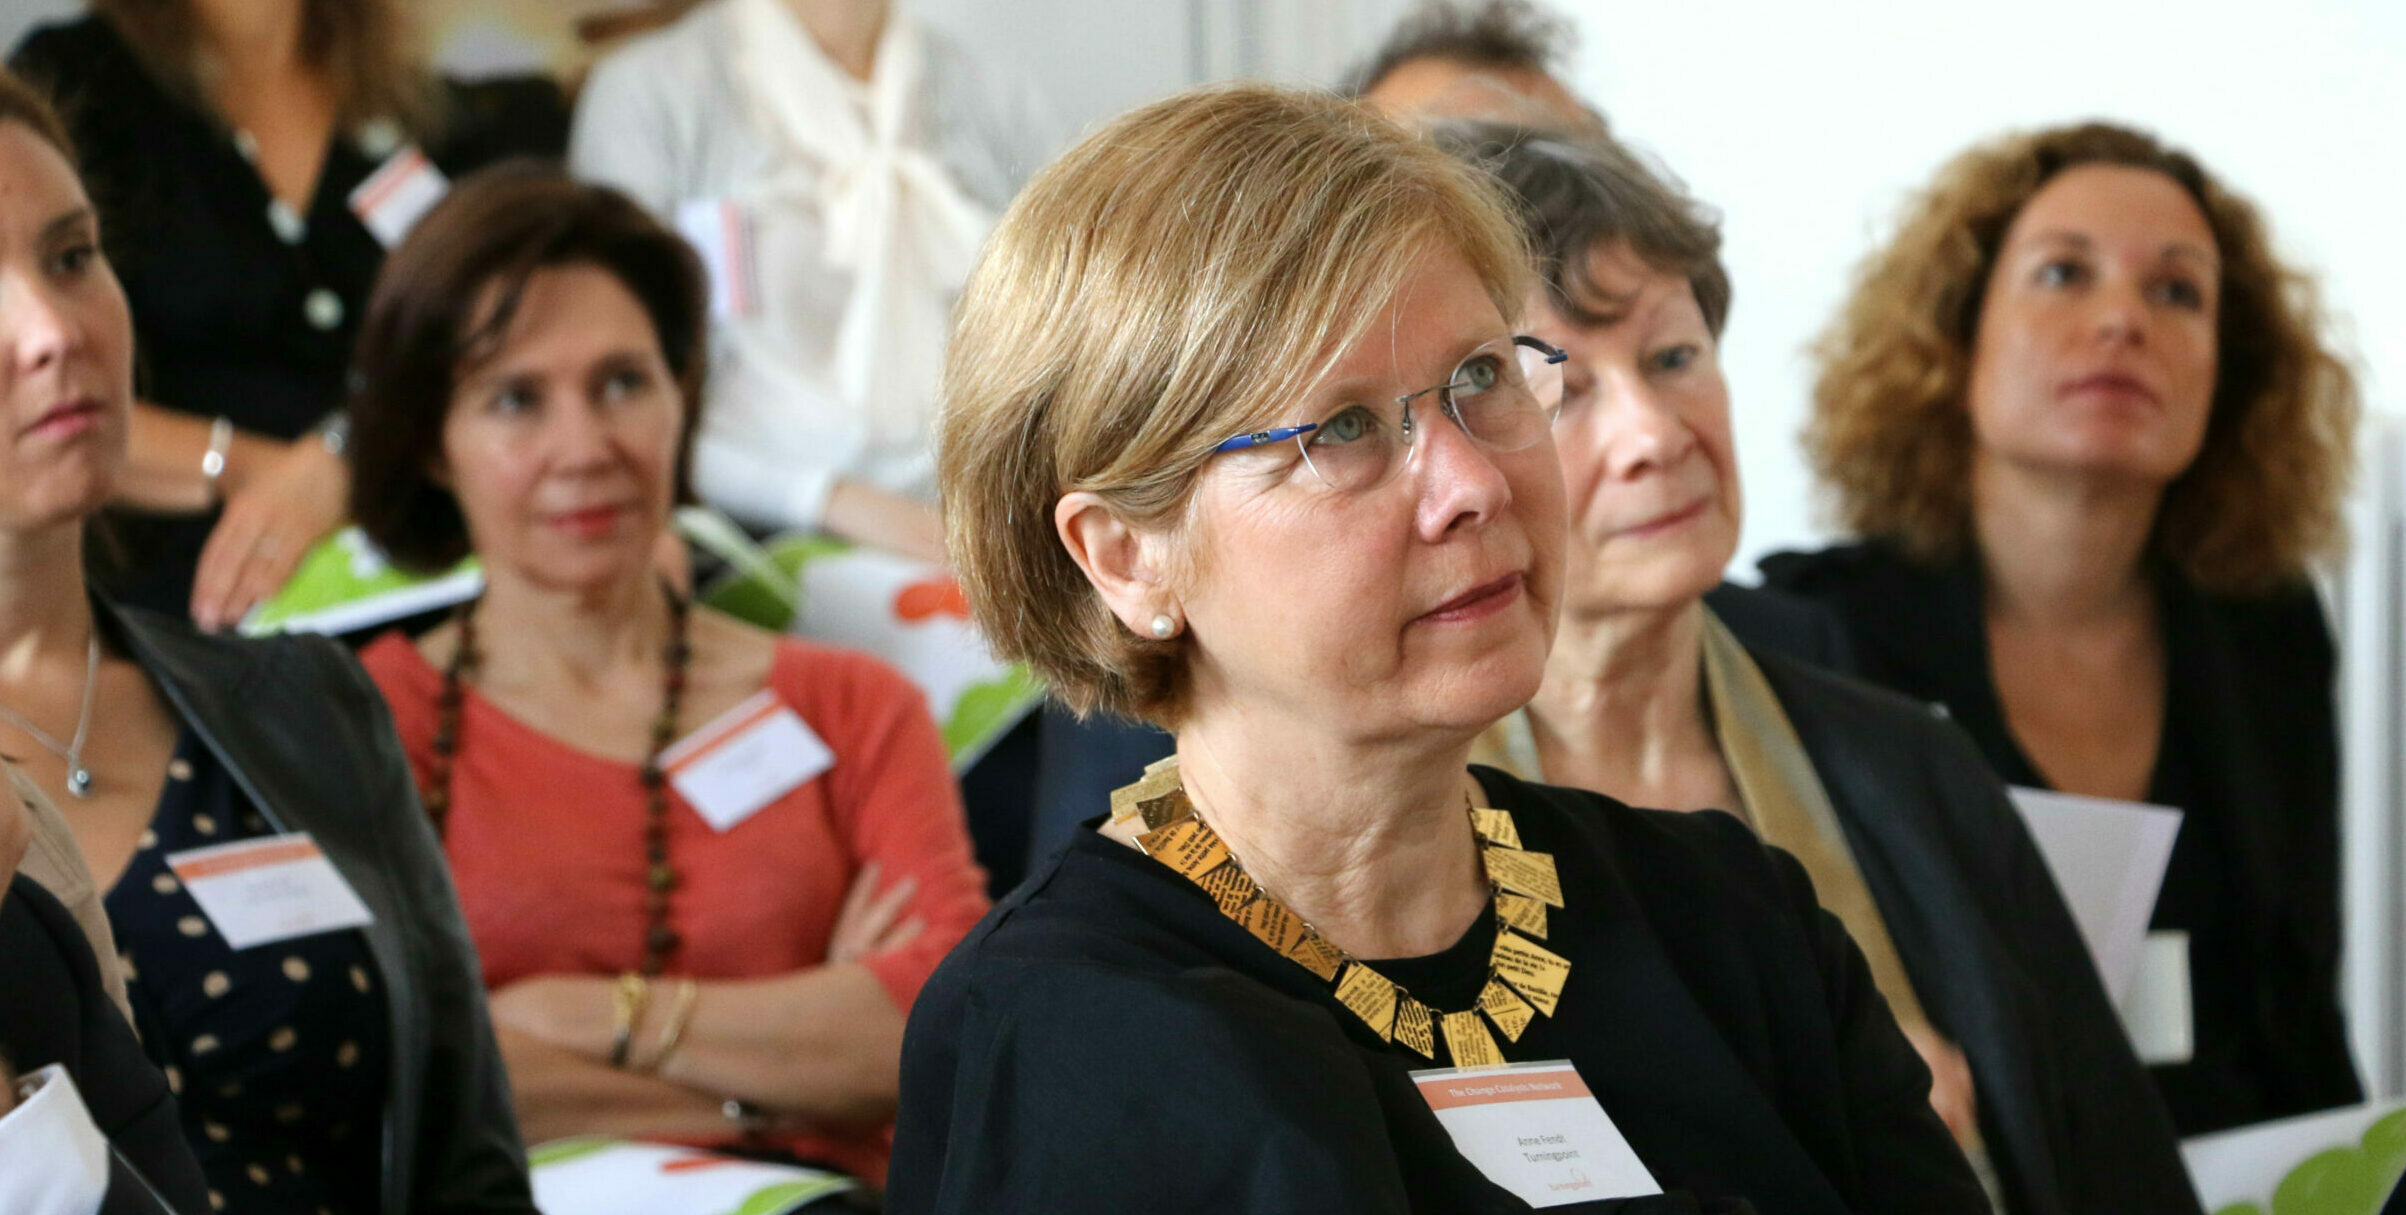 Arrival of Anne Fendt, Turningpoint Director